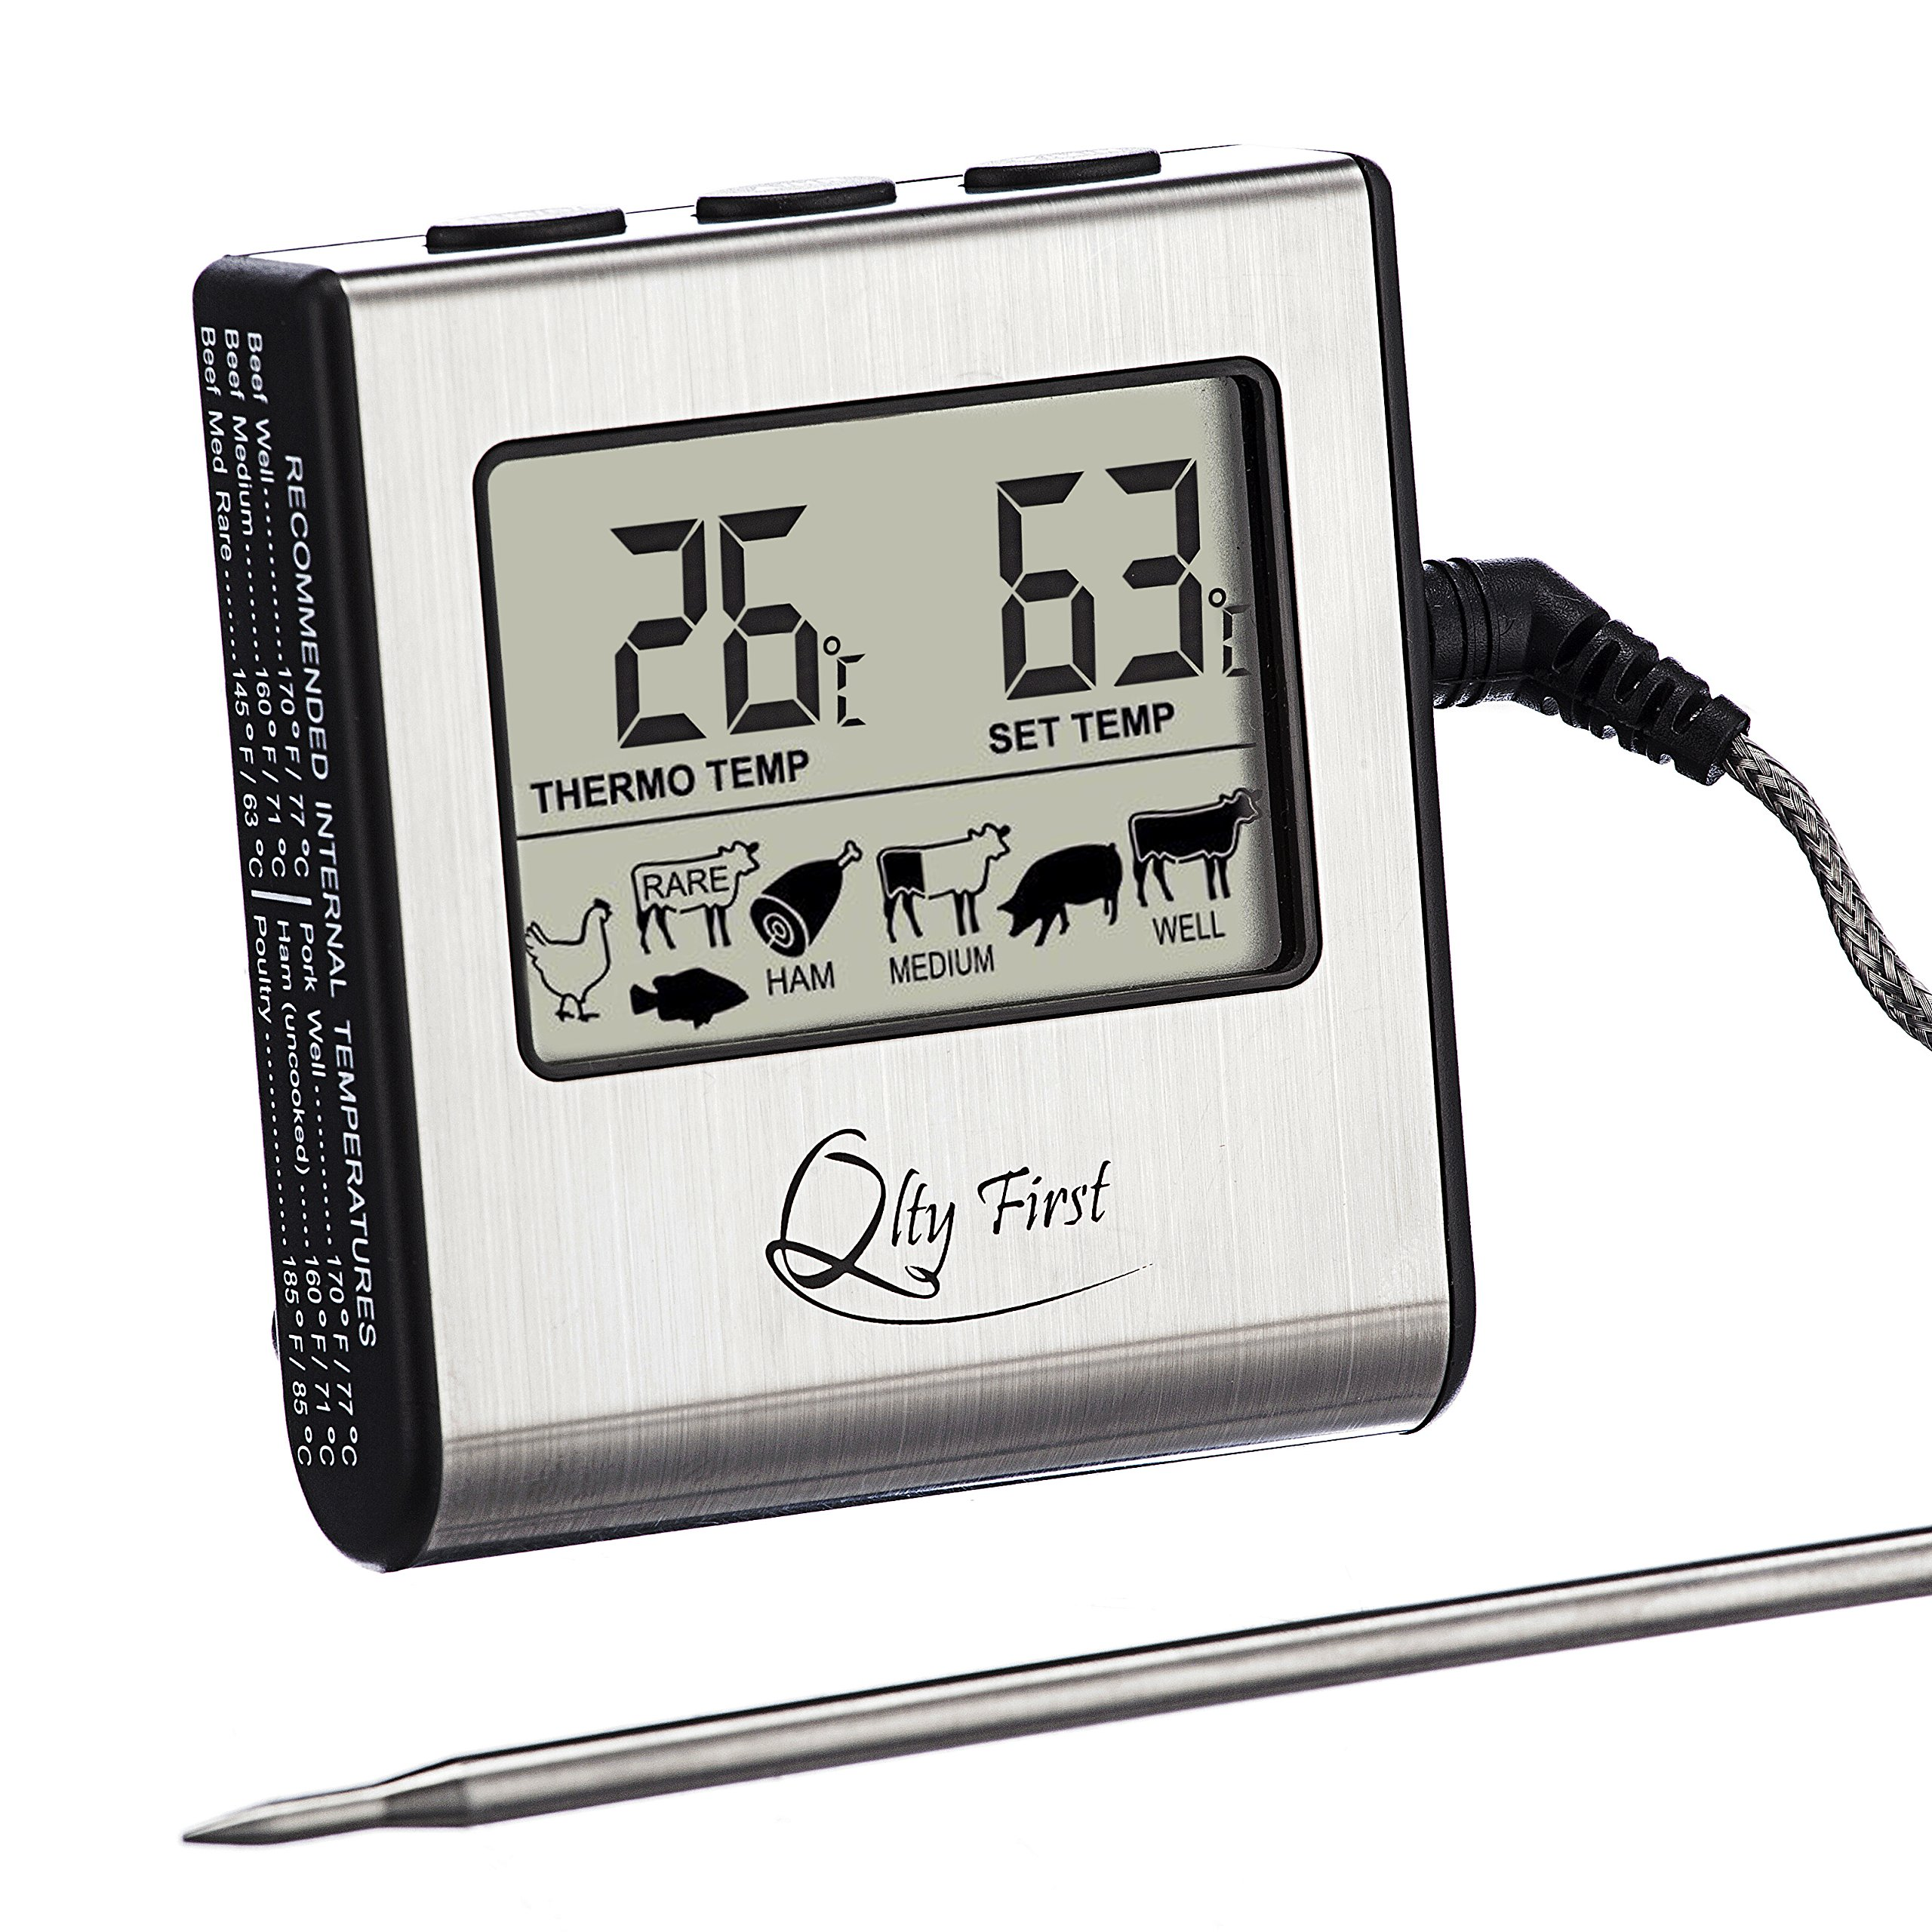 Qlty First Digital Meat Cooking Kitchen Thermometer - Stainless Steel Probe with Built-in Timer and Remote Alarm for Oven, Grill, BBQ, Stovetop smokers